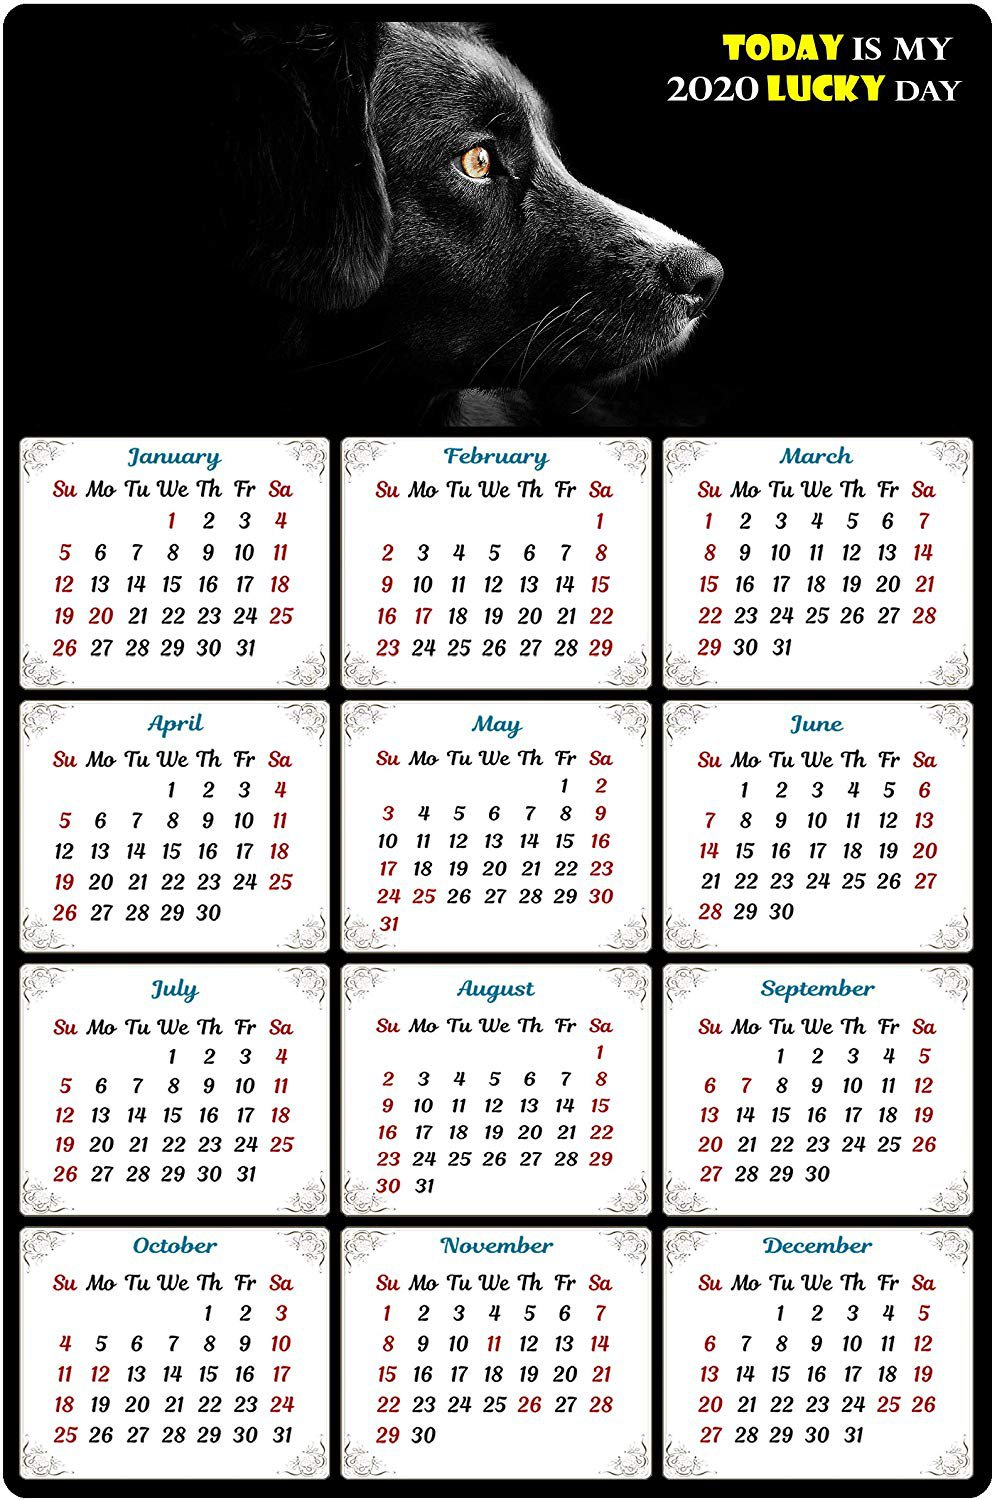 2020 Magnetic Calendar - Calendar Magnets - Today is My Lucky Day - Dog Themed 5